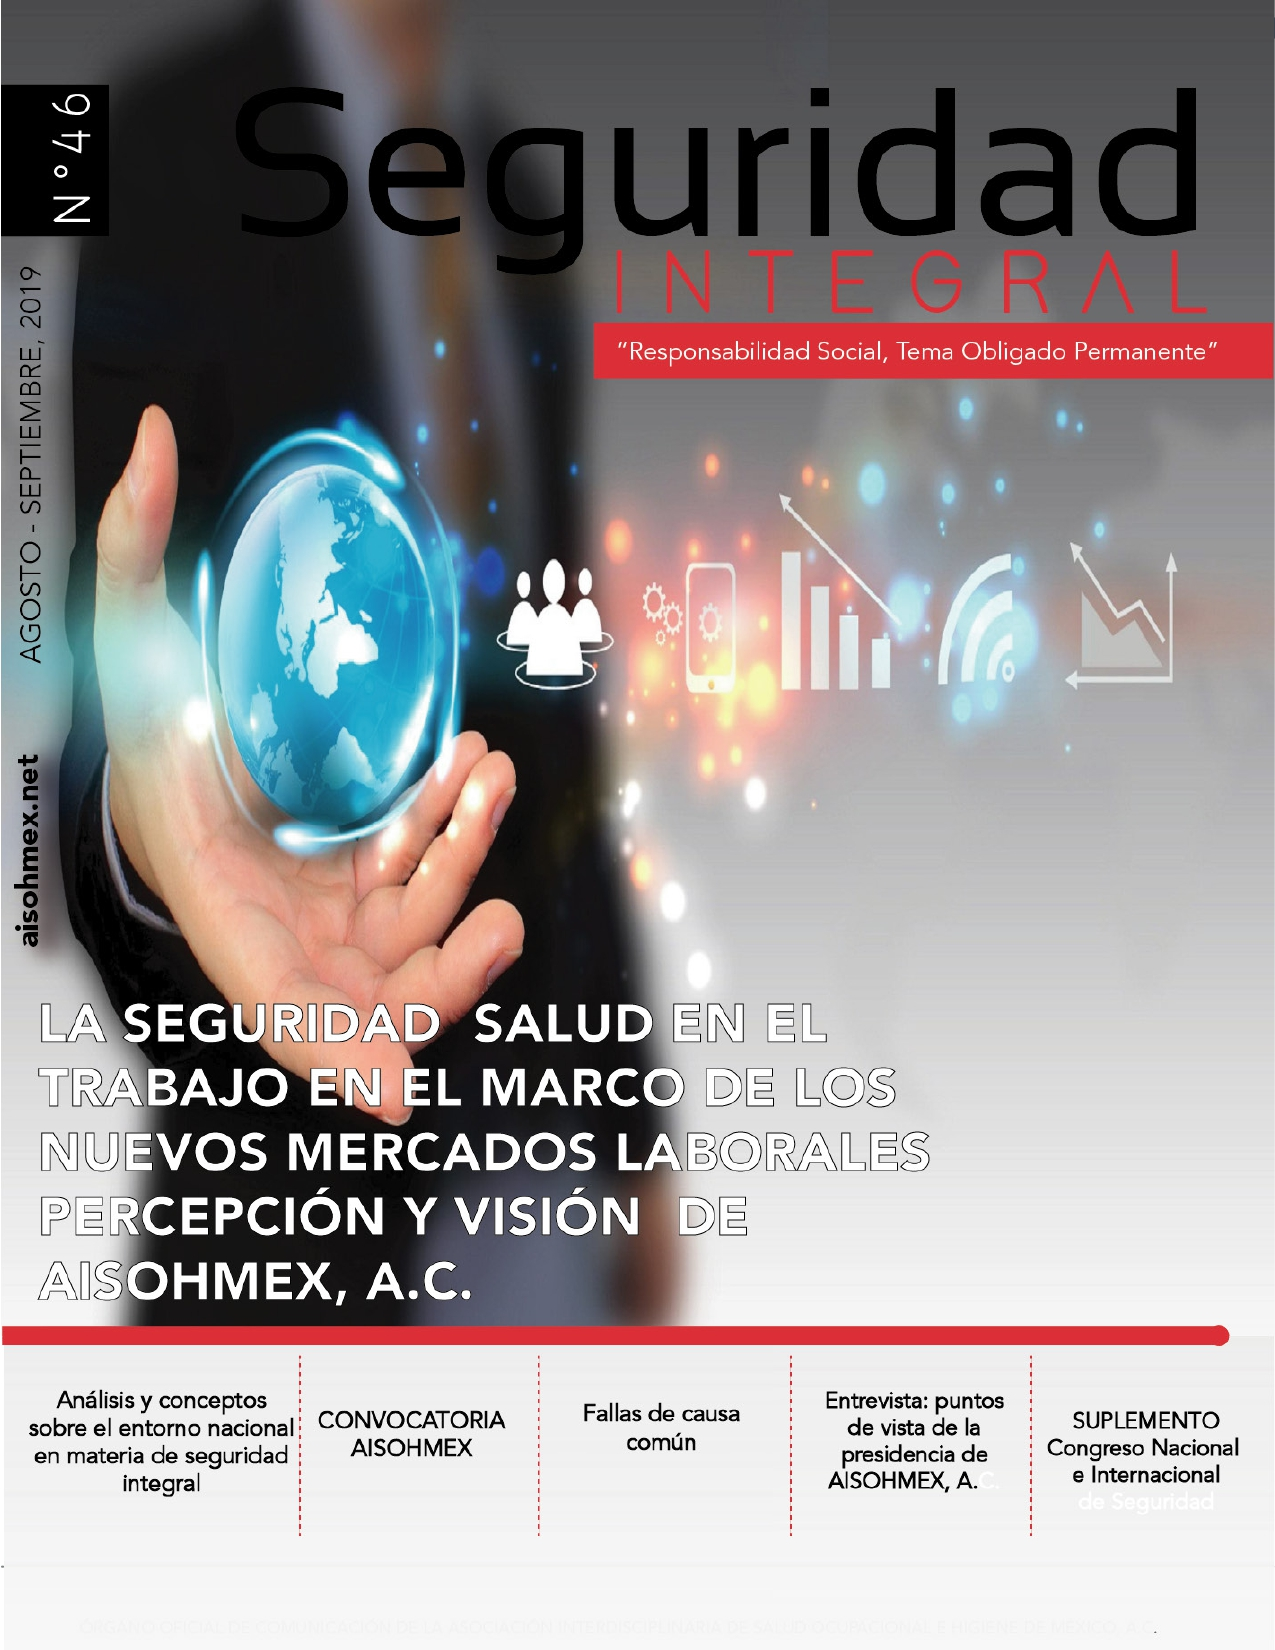 //s3.amazonaws.com/aishomex.aws.s3.tests/wp-content/uploads/2018/04/21133837/Revista-46-1_page-0001.jpg